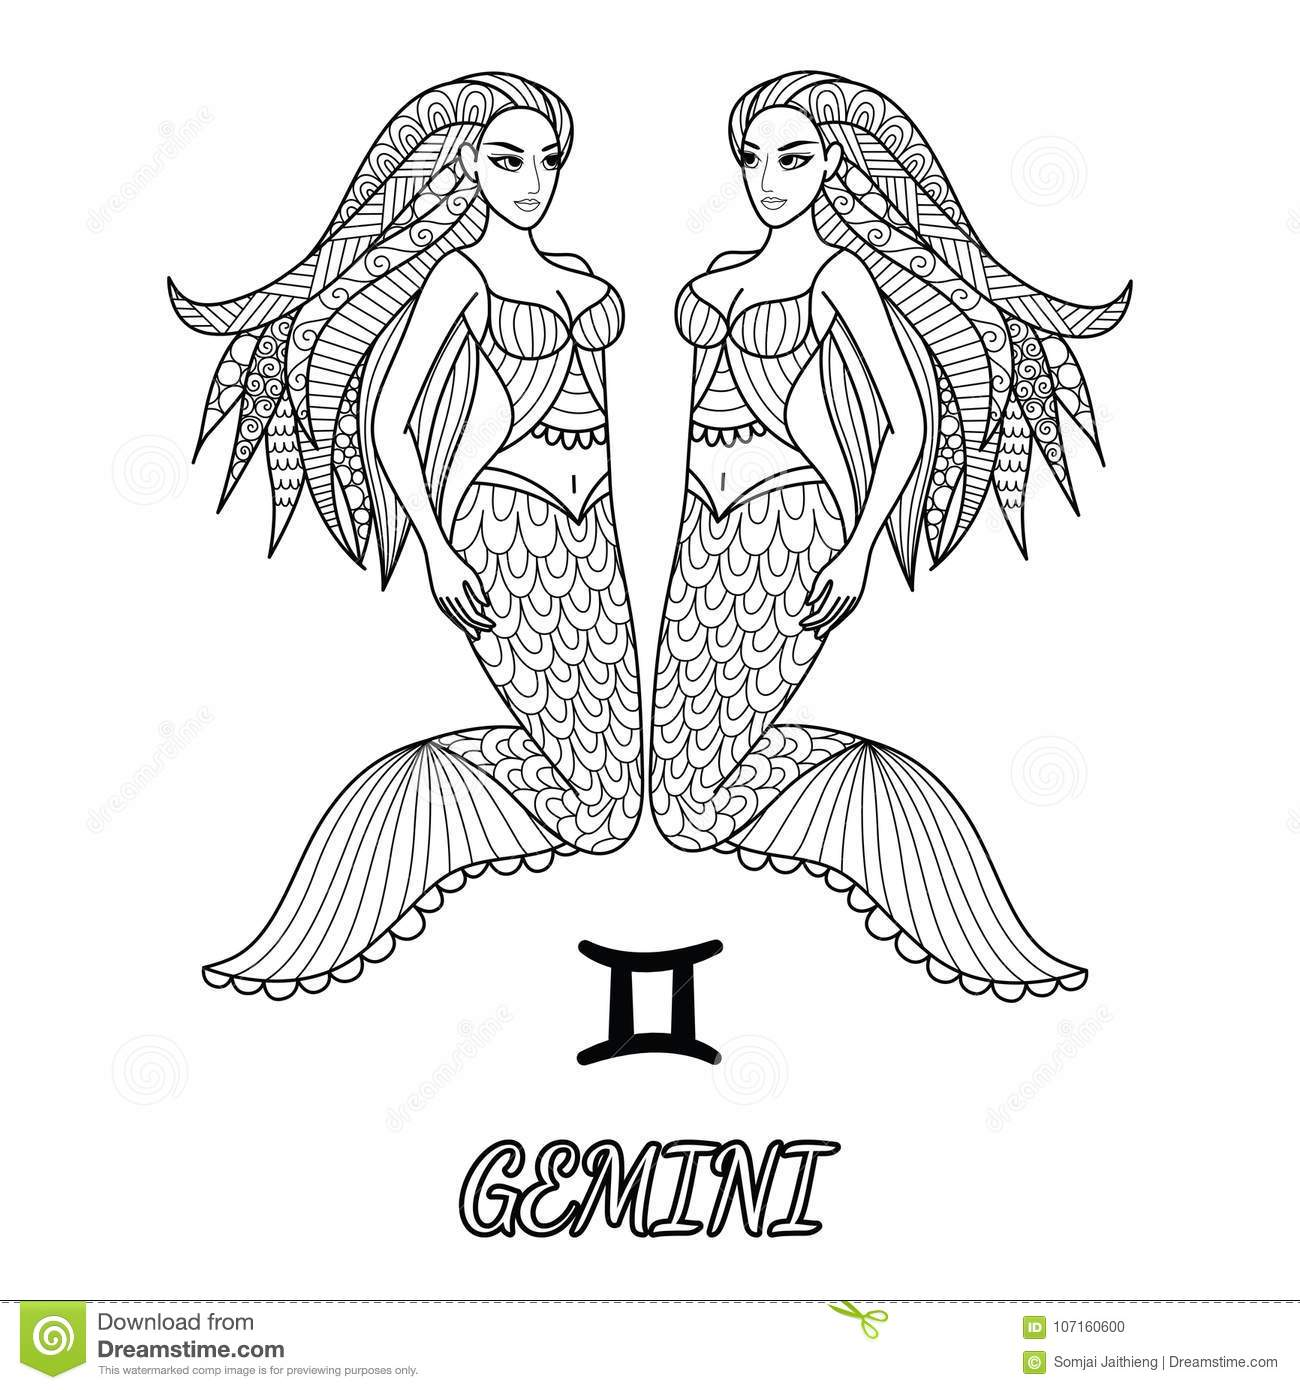 Line Art Design Of Gemini Zodiac Sign For Element And Adult Coloring Book Page